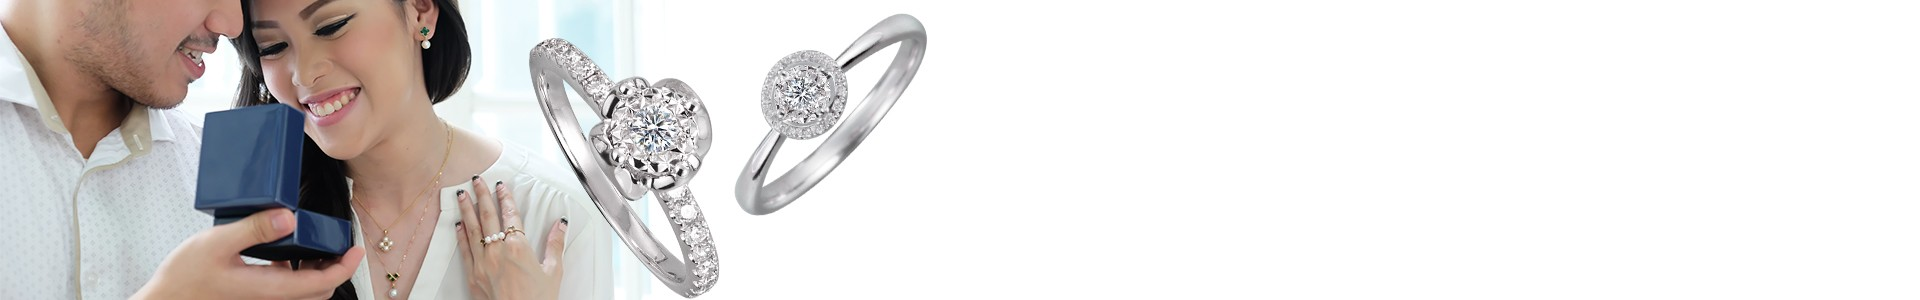 Solitaire Ring - Crown